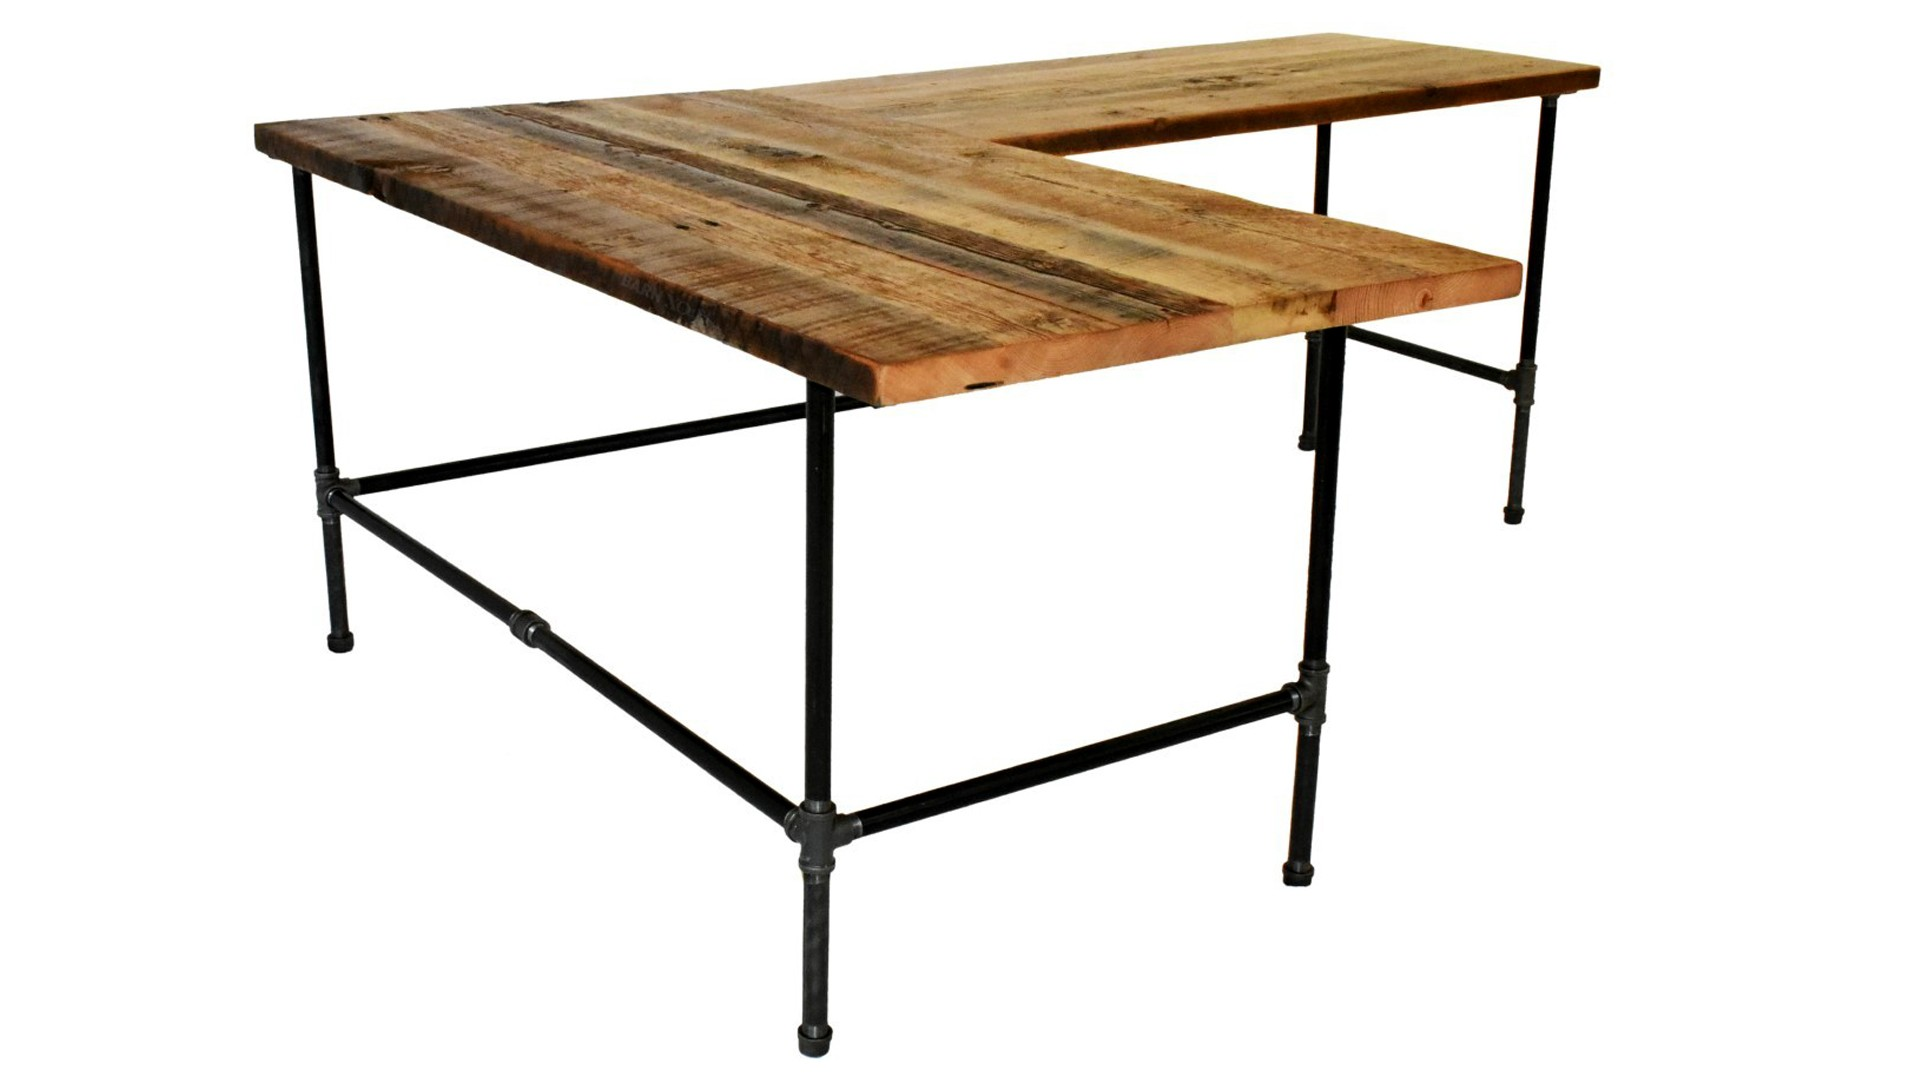 Modern Industrial L-Shaped Desk